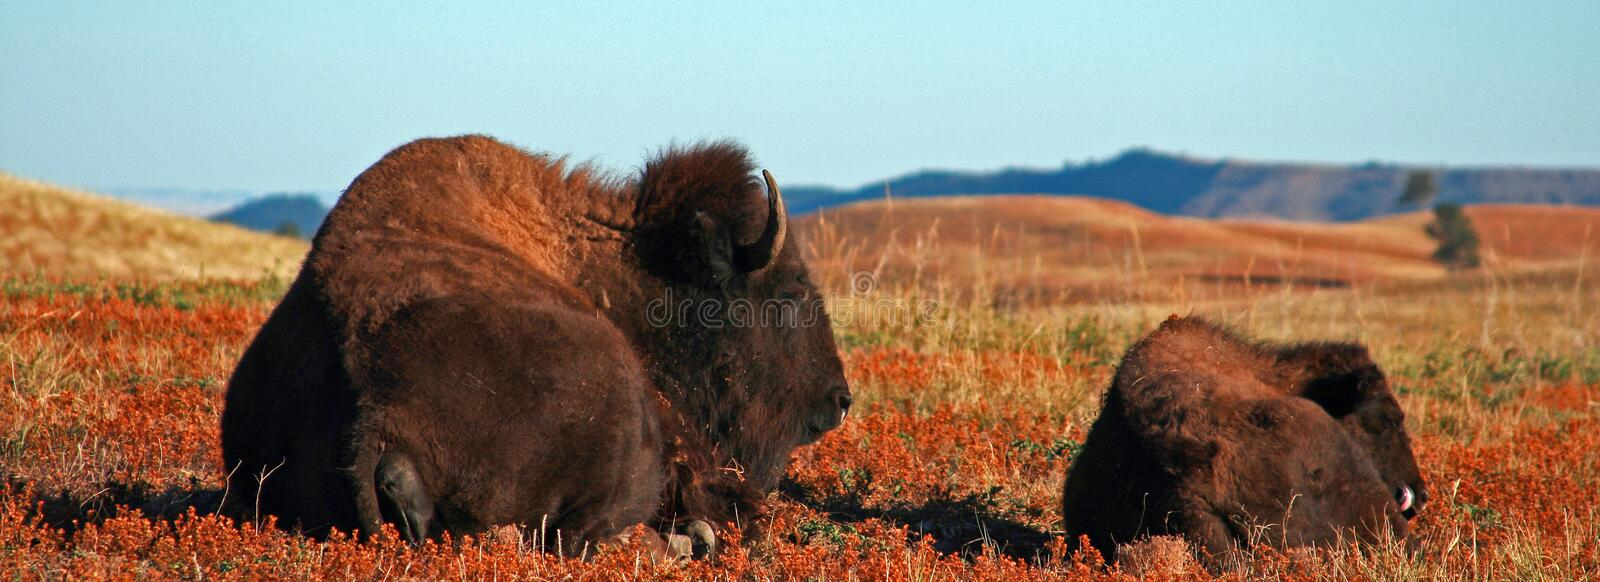 American Bison Buffalo Cow with calf in Wind Cave National Park. American Bison Buffalo Cow w calf in Wind Cave National Park in the Black Hills of South Dakota royalty free stock photos